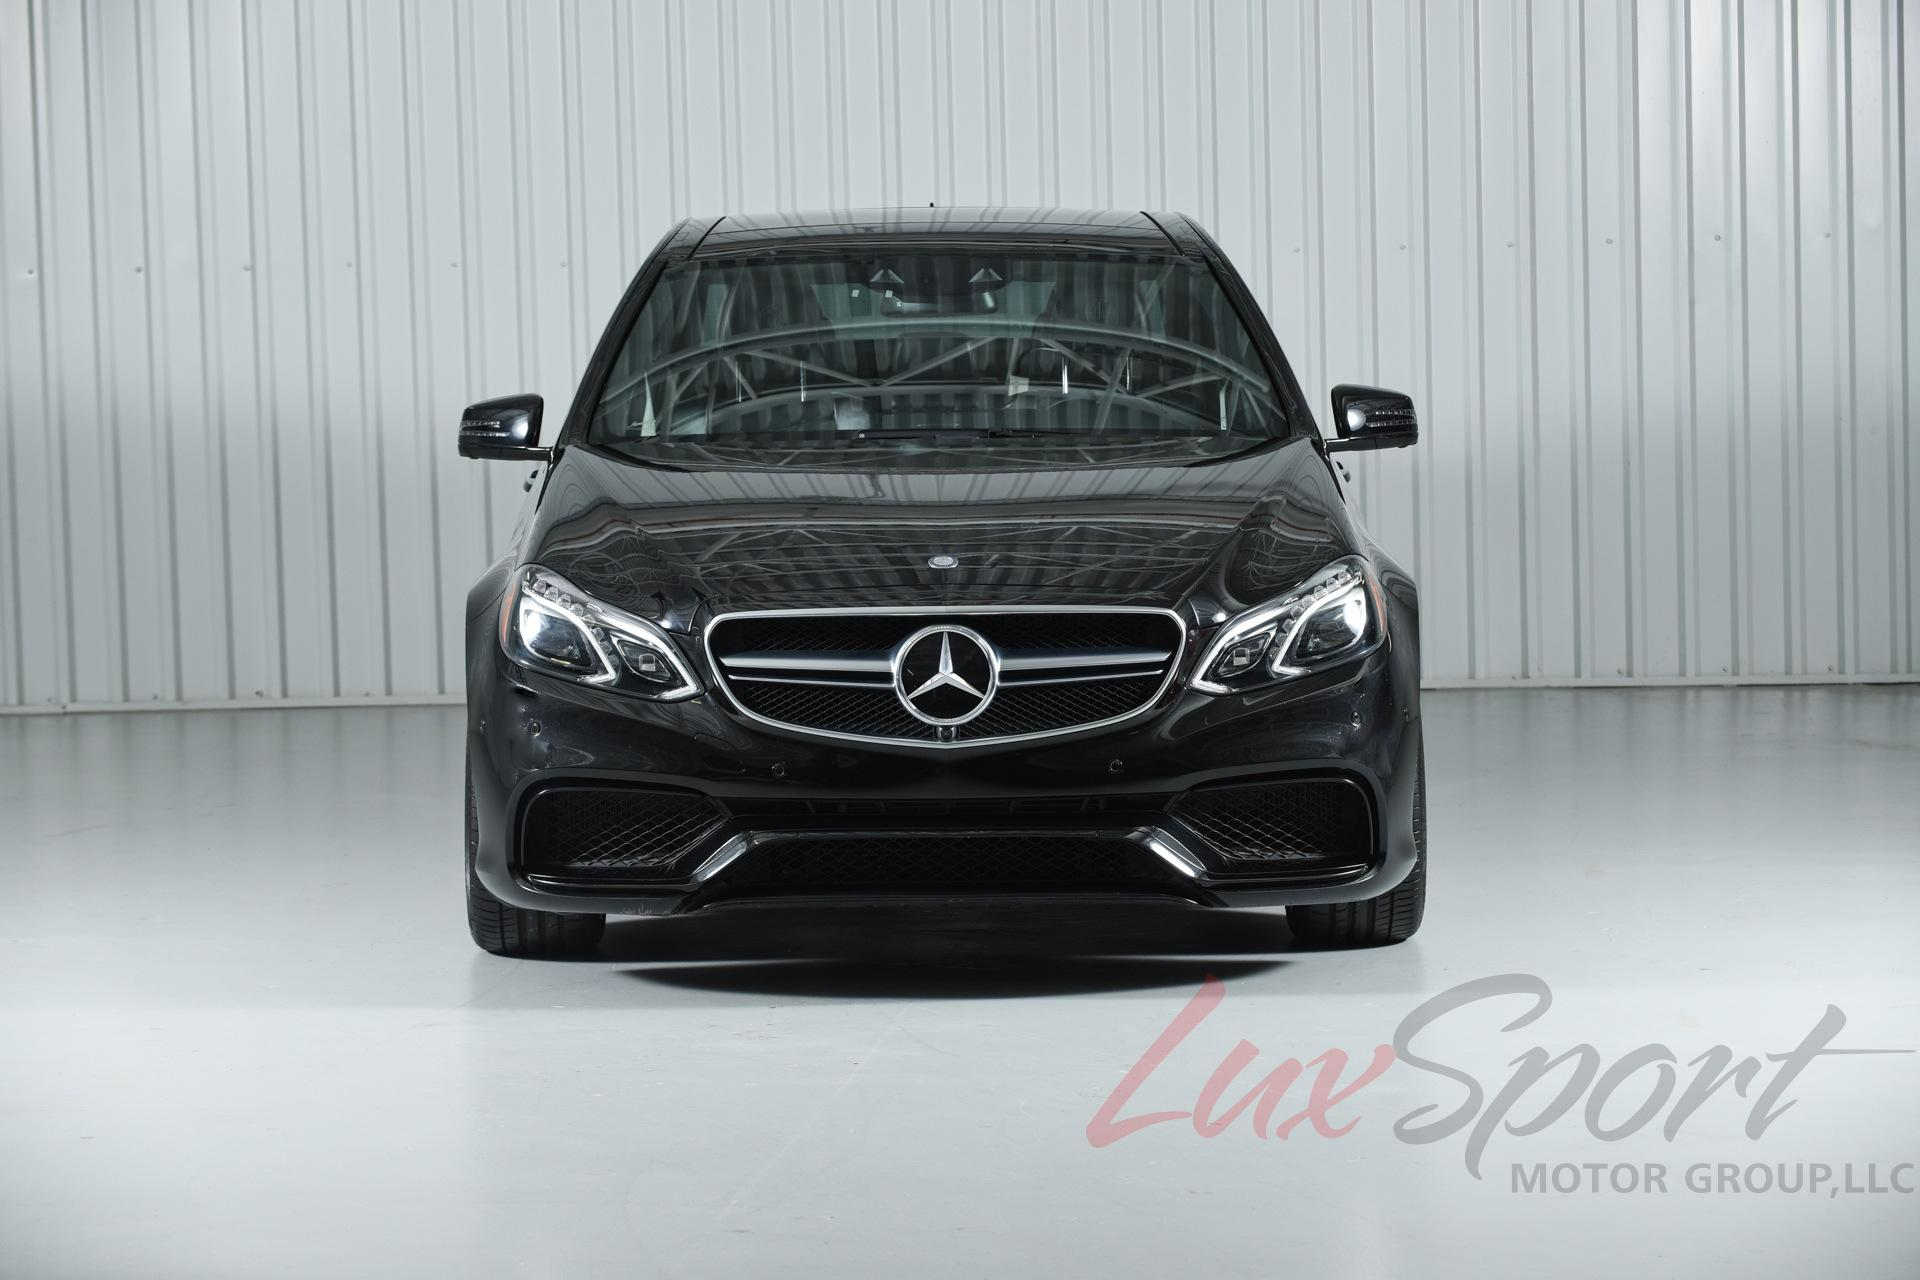 2014 mercedes benz e63 amg s model used mercedes benz for Mercedes benz e63 amg 2014